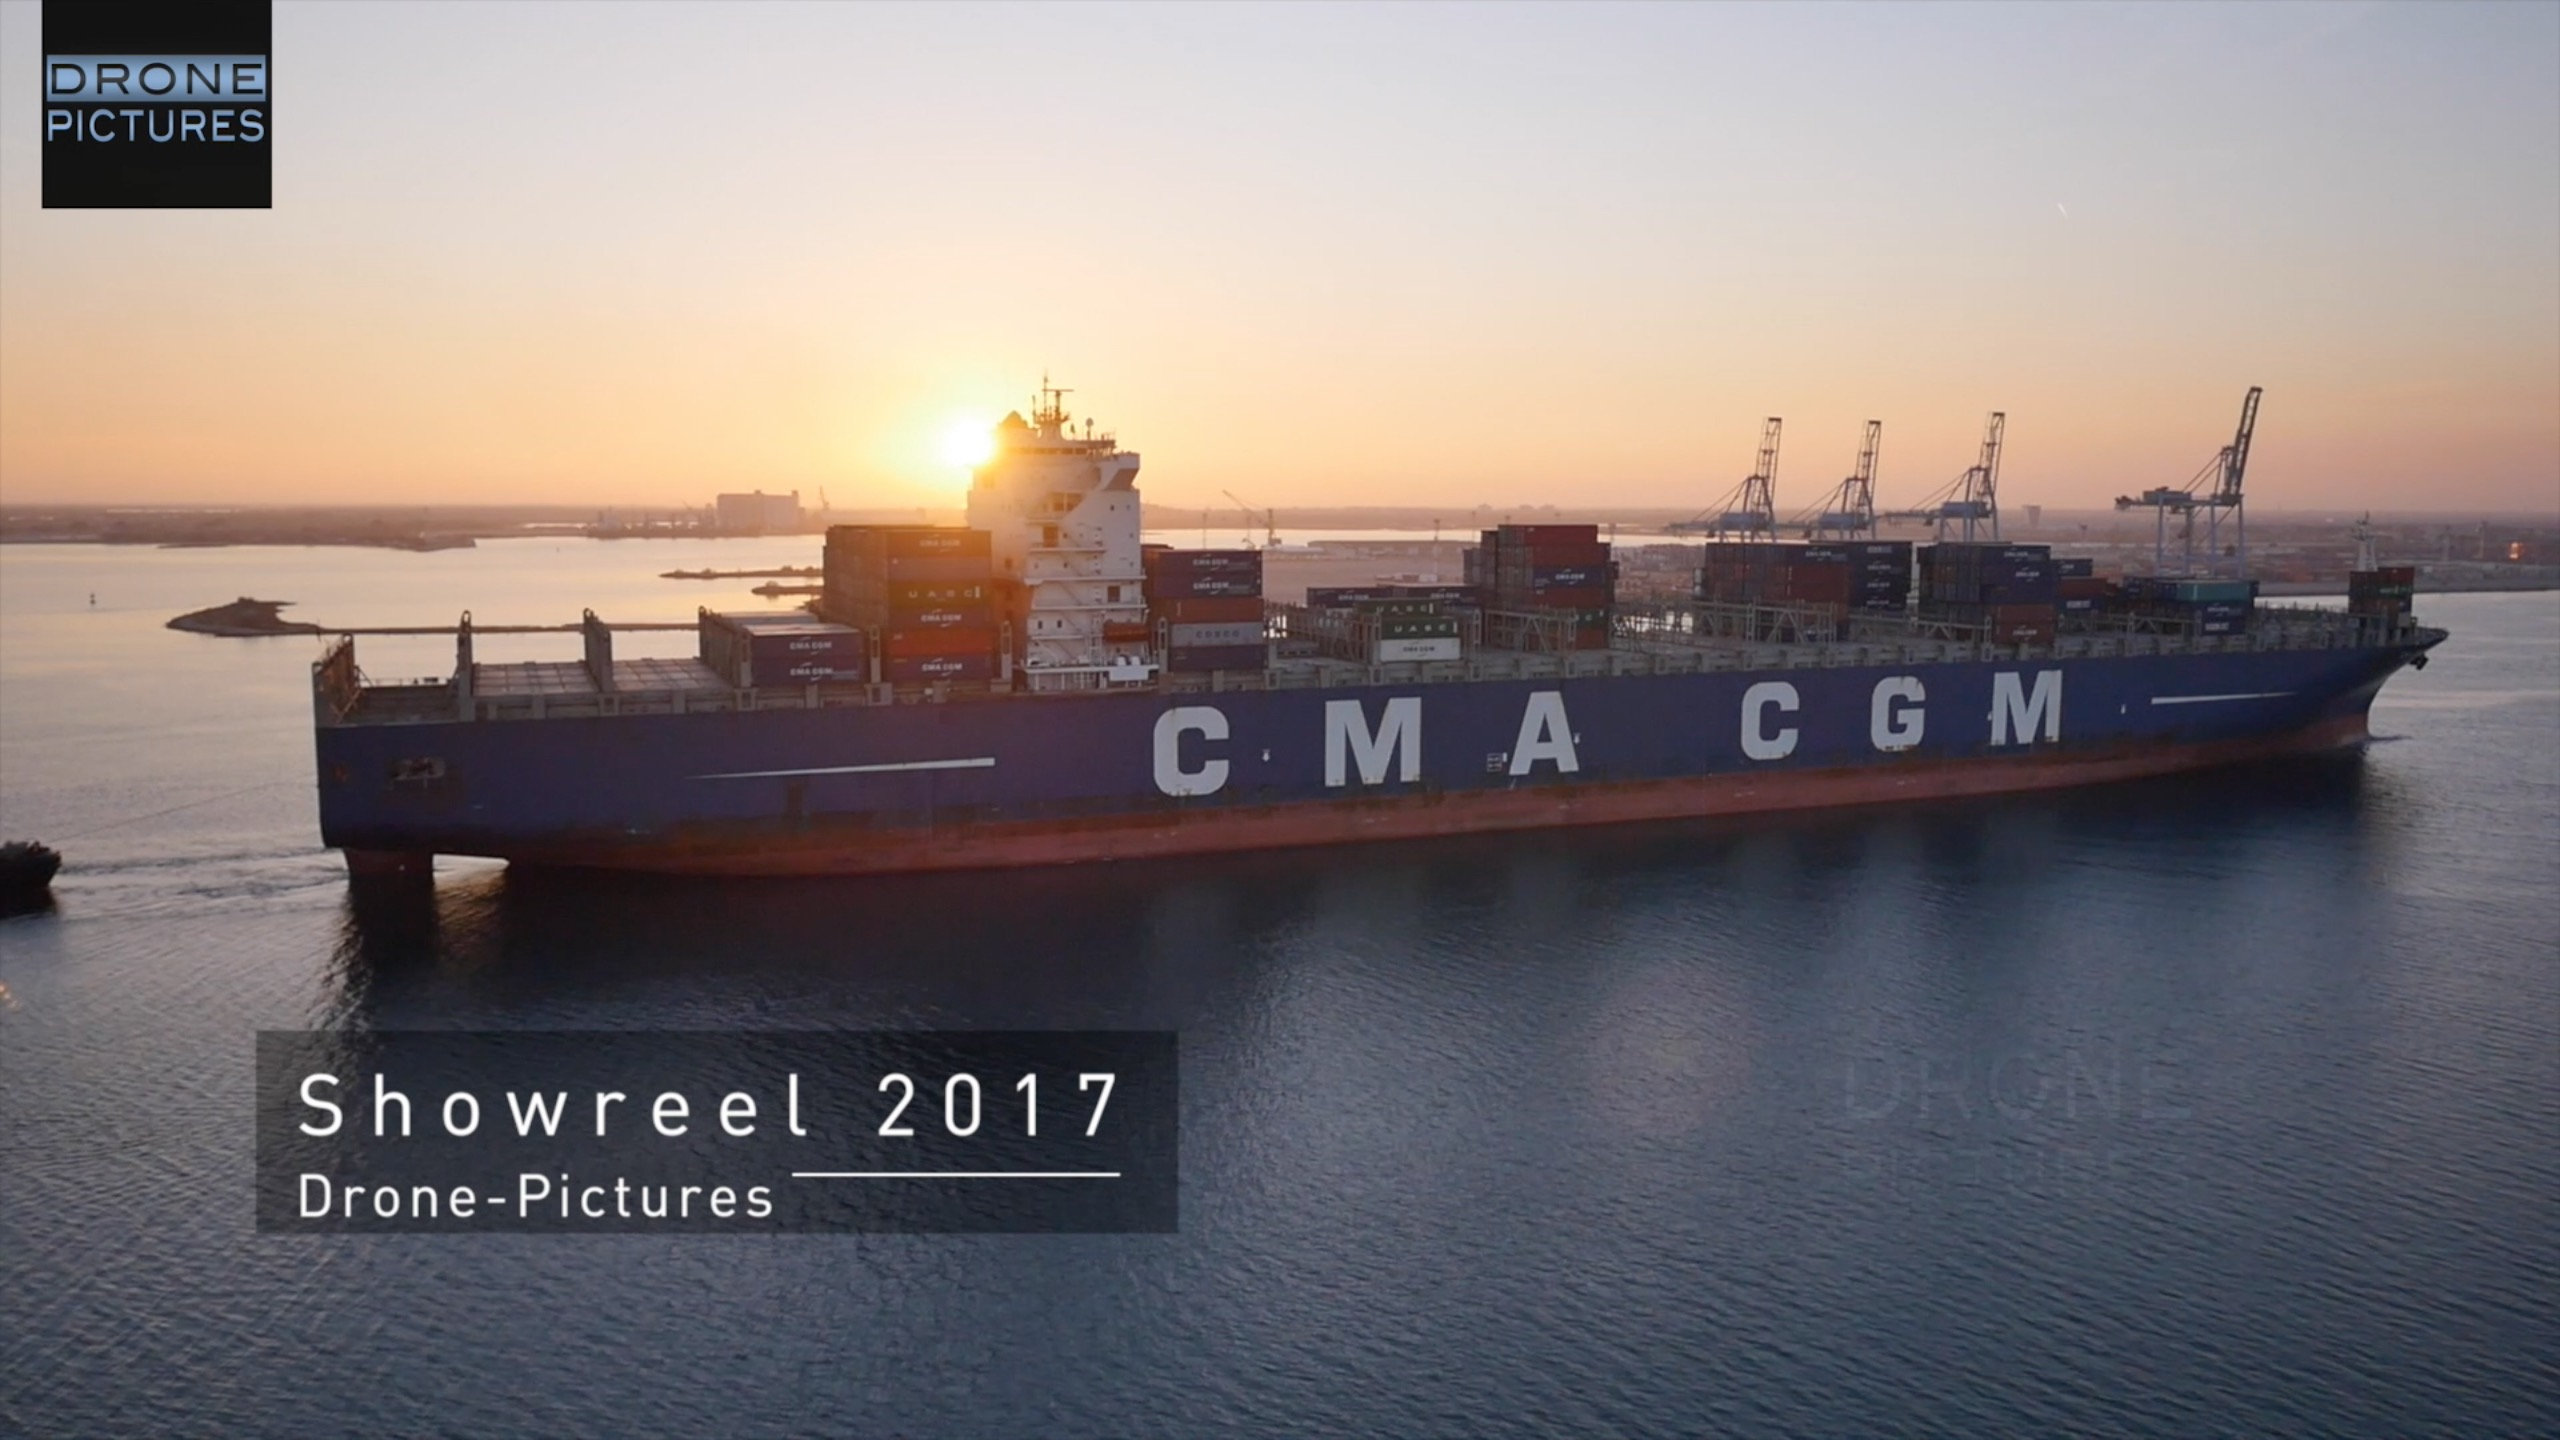 Showreel 2017 by Drone-Pictures